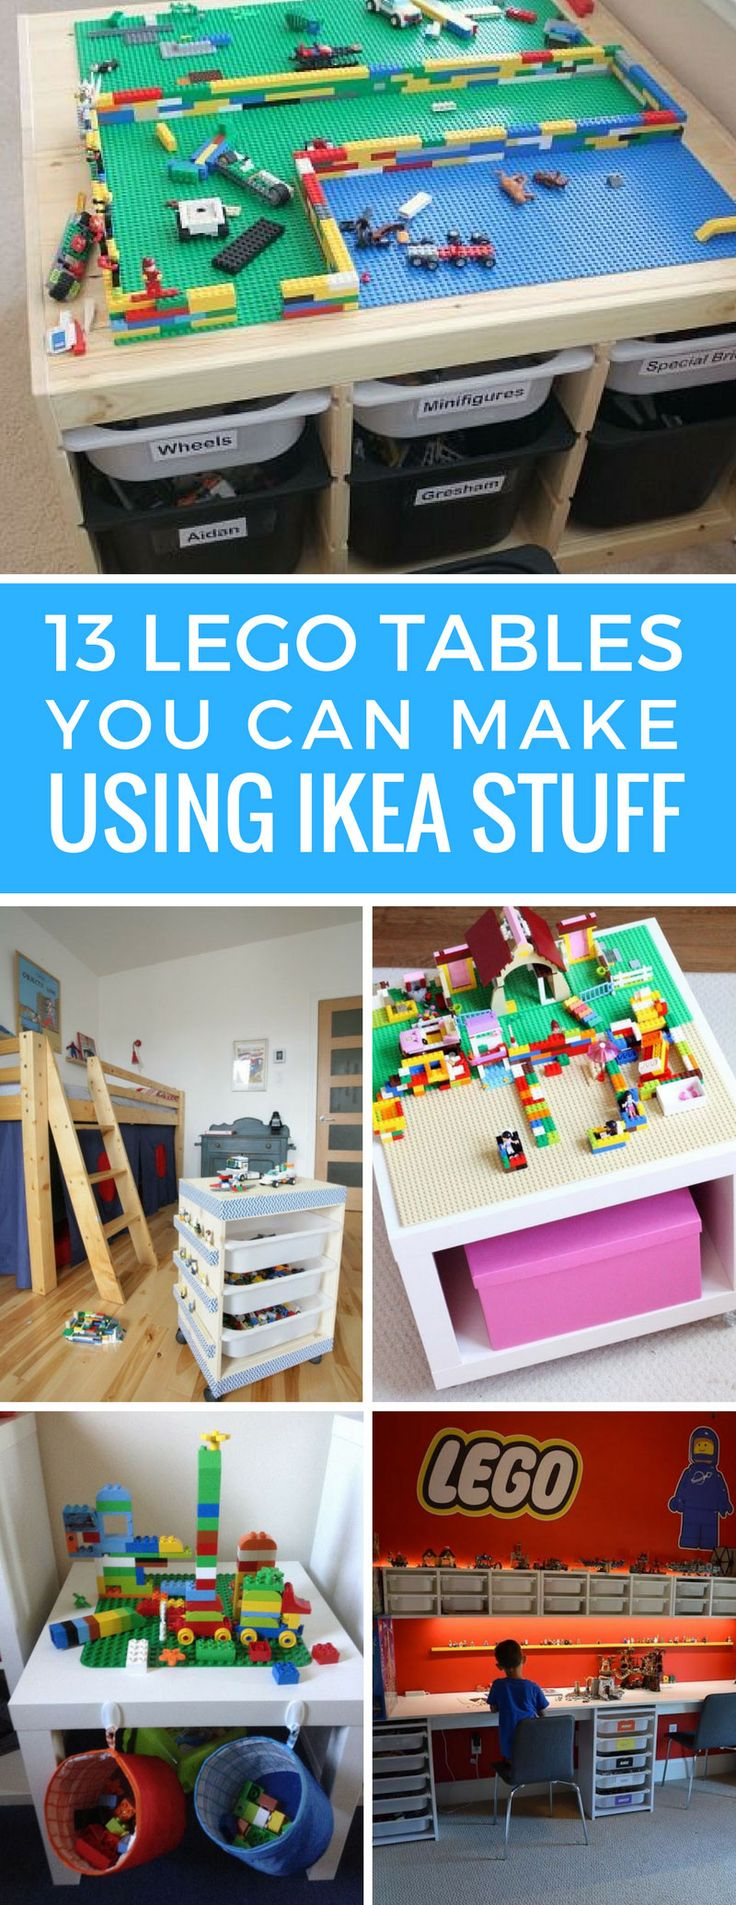 13 awesome ikea lego tables that your kids will go crazy over - Boys Room Lego Ideas